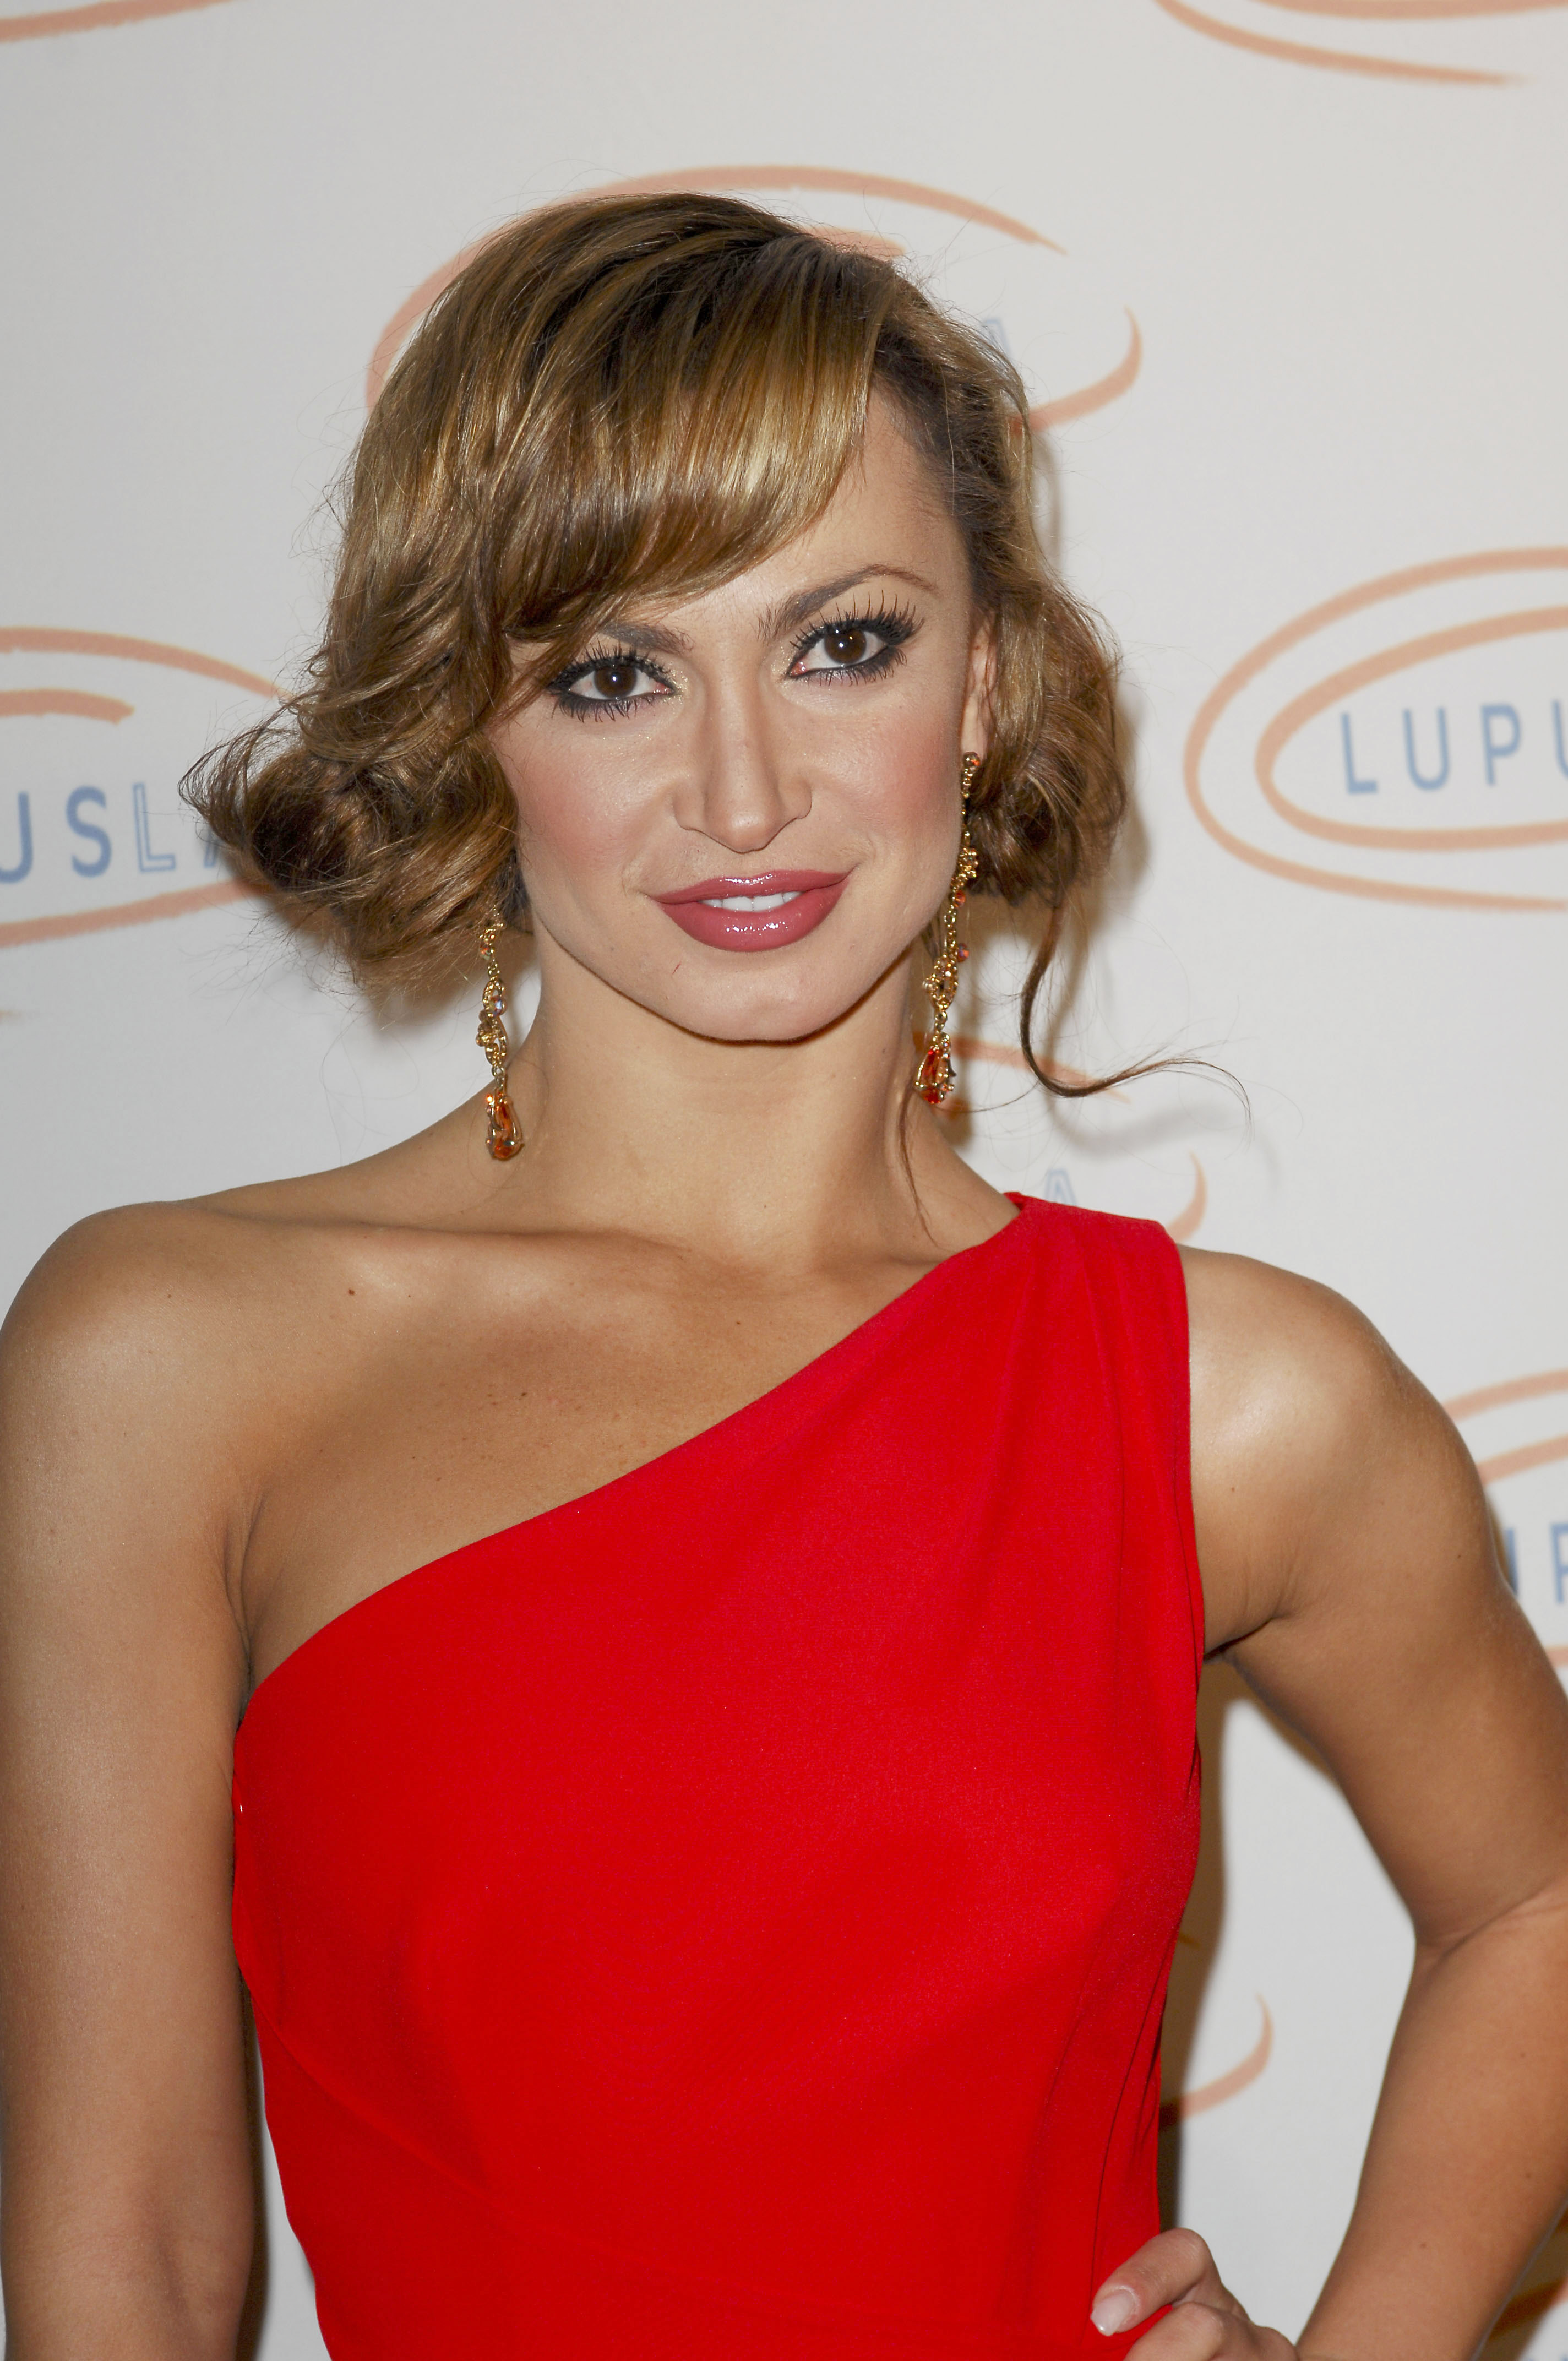 29687_Karina_Smirnoff_2008-11-07_-_Lupus_LA1s_Sixth_Annual_Hollywood_Bag_Ladies_Luncheon_in_Beverly_H_159_122_936lo.jpg